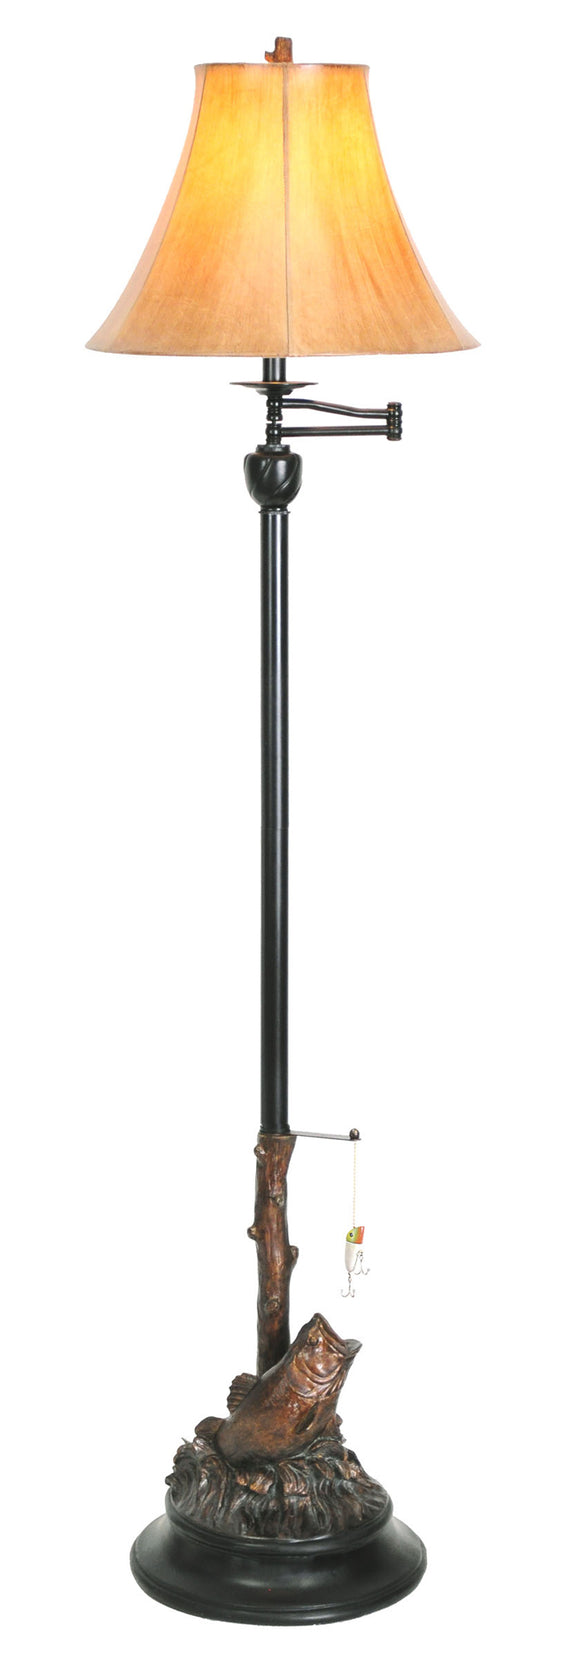 CFLBASS -  BASS FLOOR LAMP by Vintage Direct Lamps - ThunderHorseCabin.com